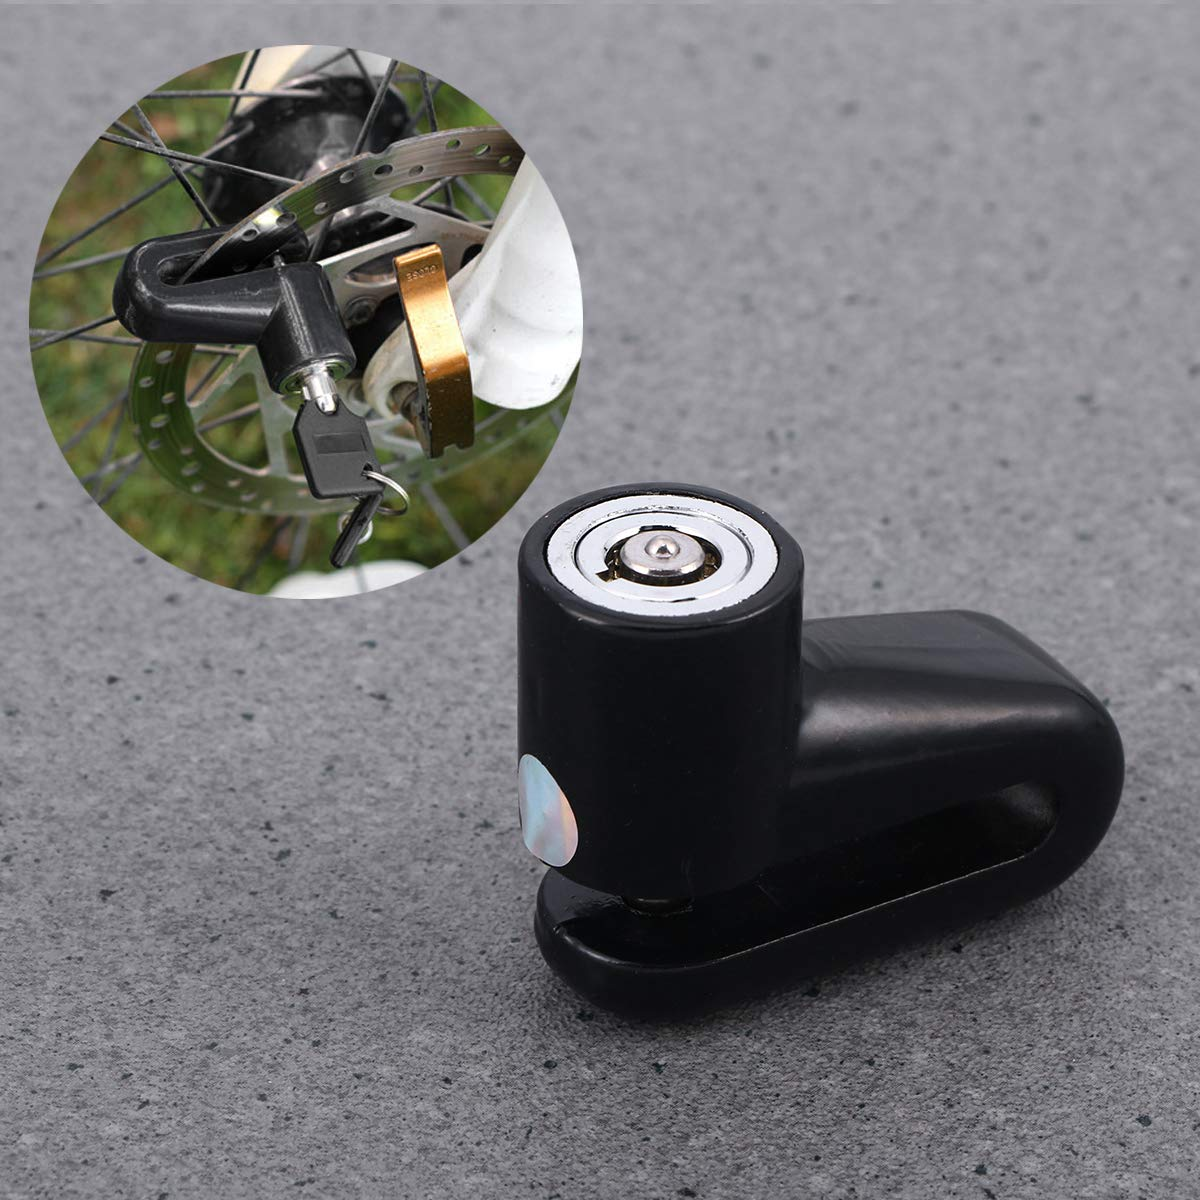 LIOOBO Motorcycle Lock Security Anti Theft Bike Bicycle Motorbike Motorcycle Disc Brake Lock Theft Protection for Scooter Motorbike Black